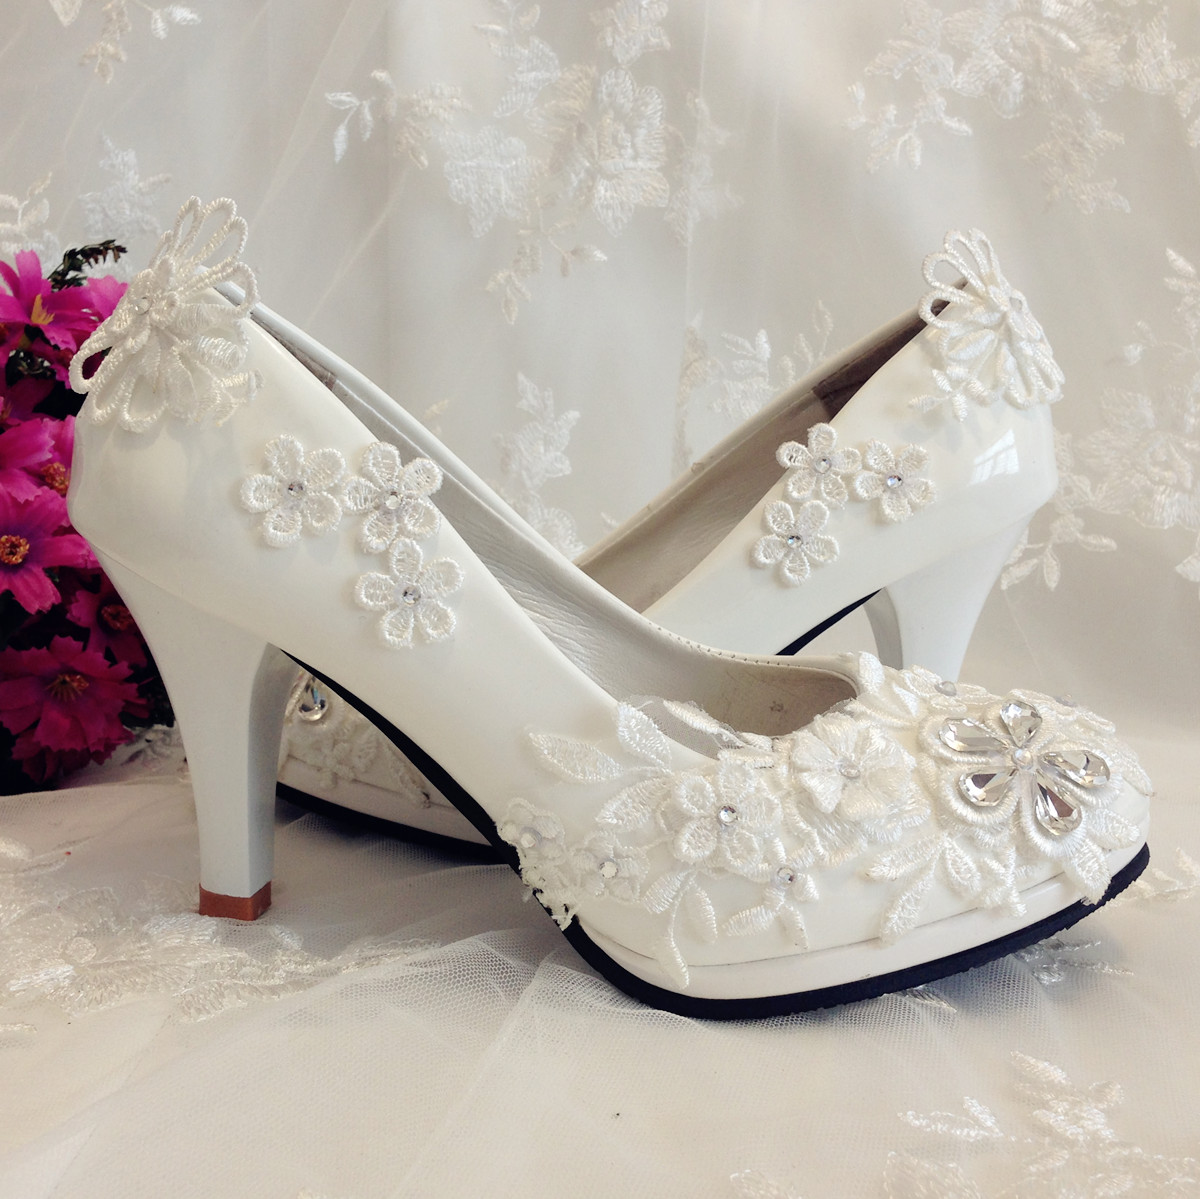 2014 new patent leather white pumps plus size wedding shoes bridal bridesmaid lace luxury crystal diamond dress